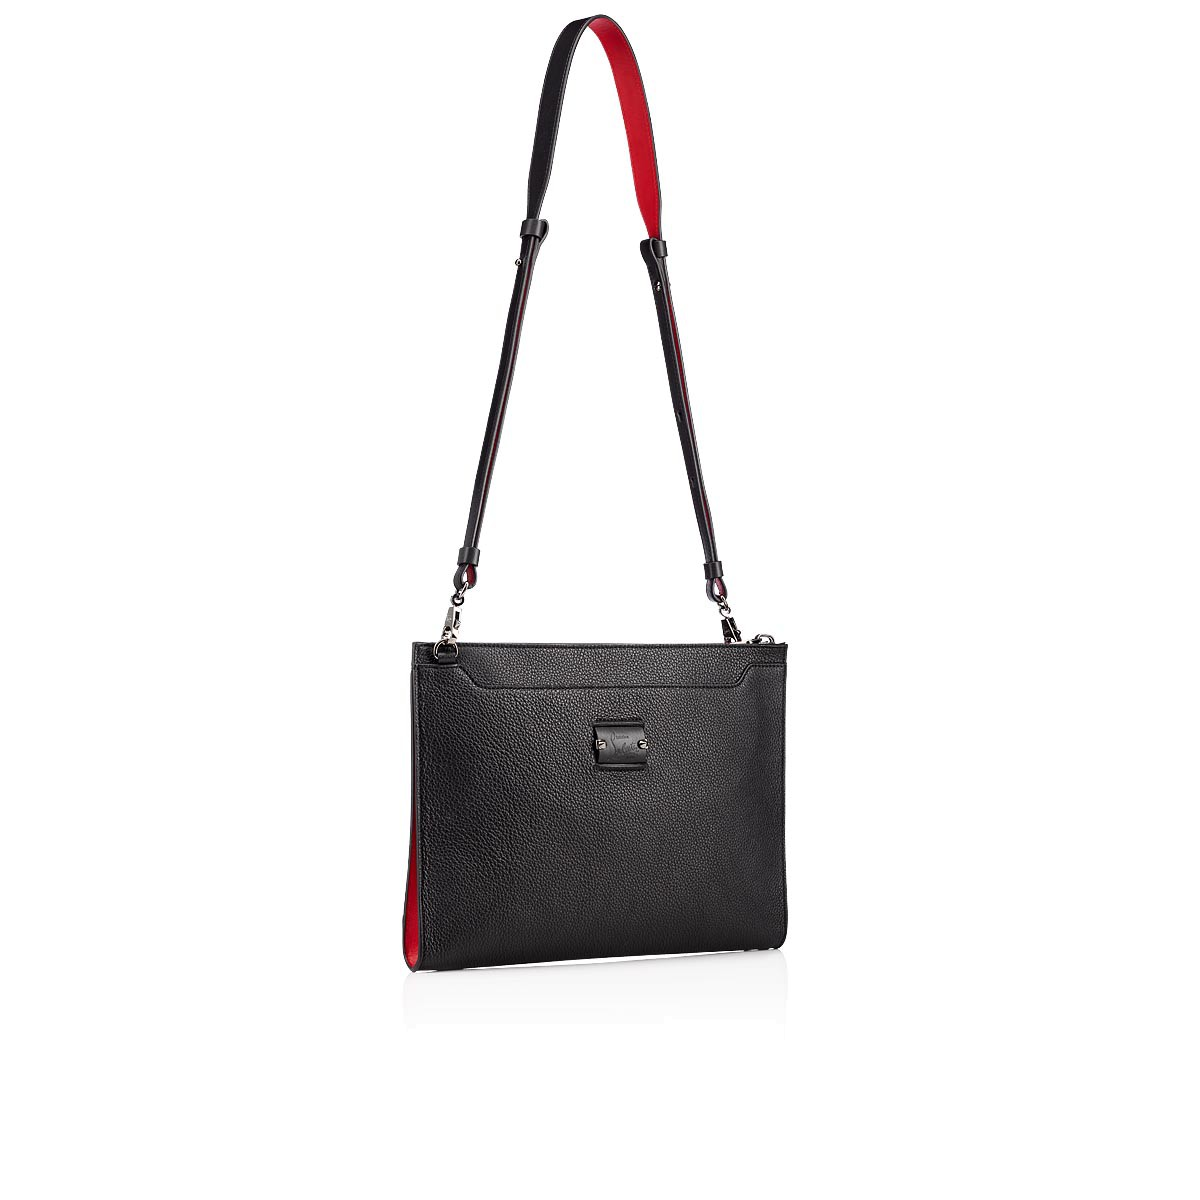 Bags - Skypouch Classic Leather - Christian Louboutin